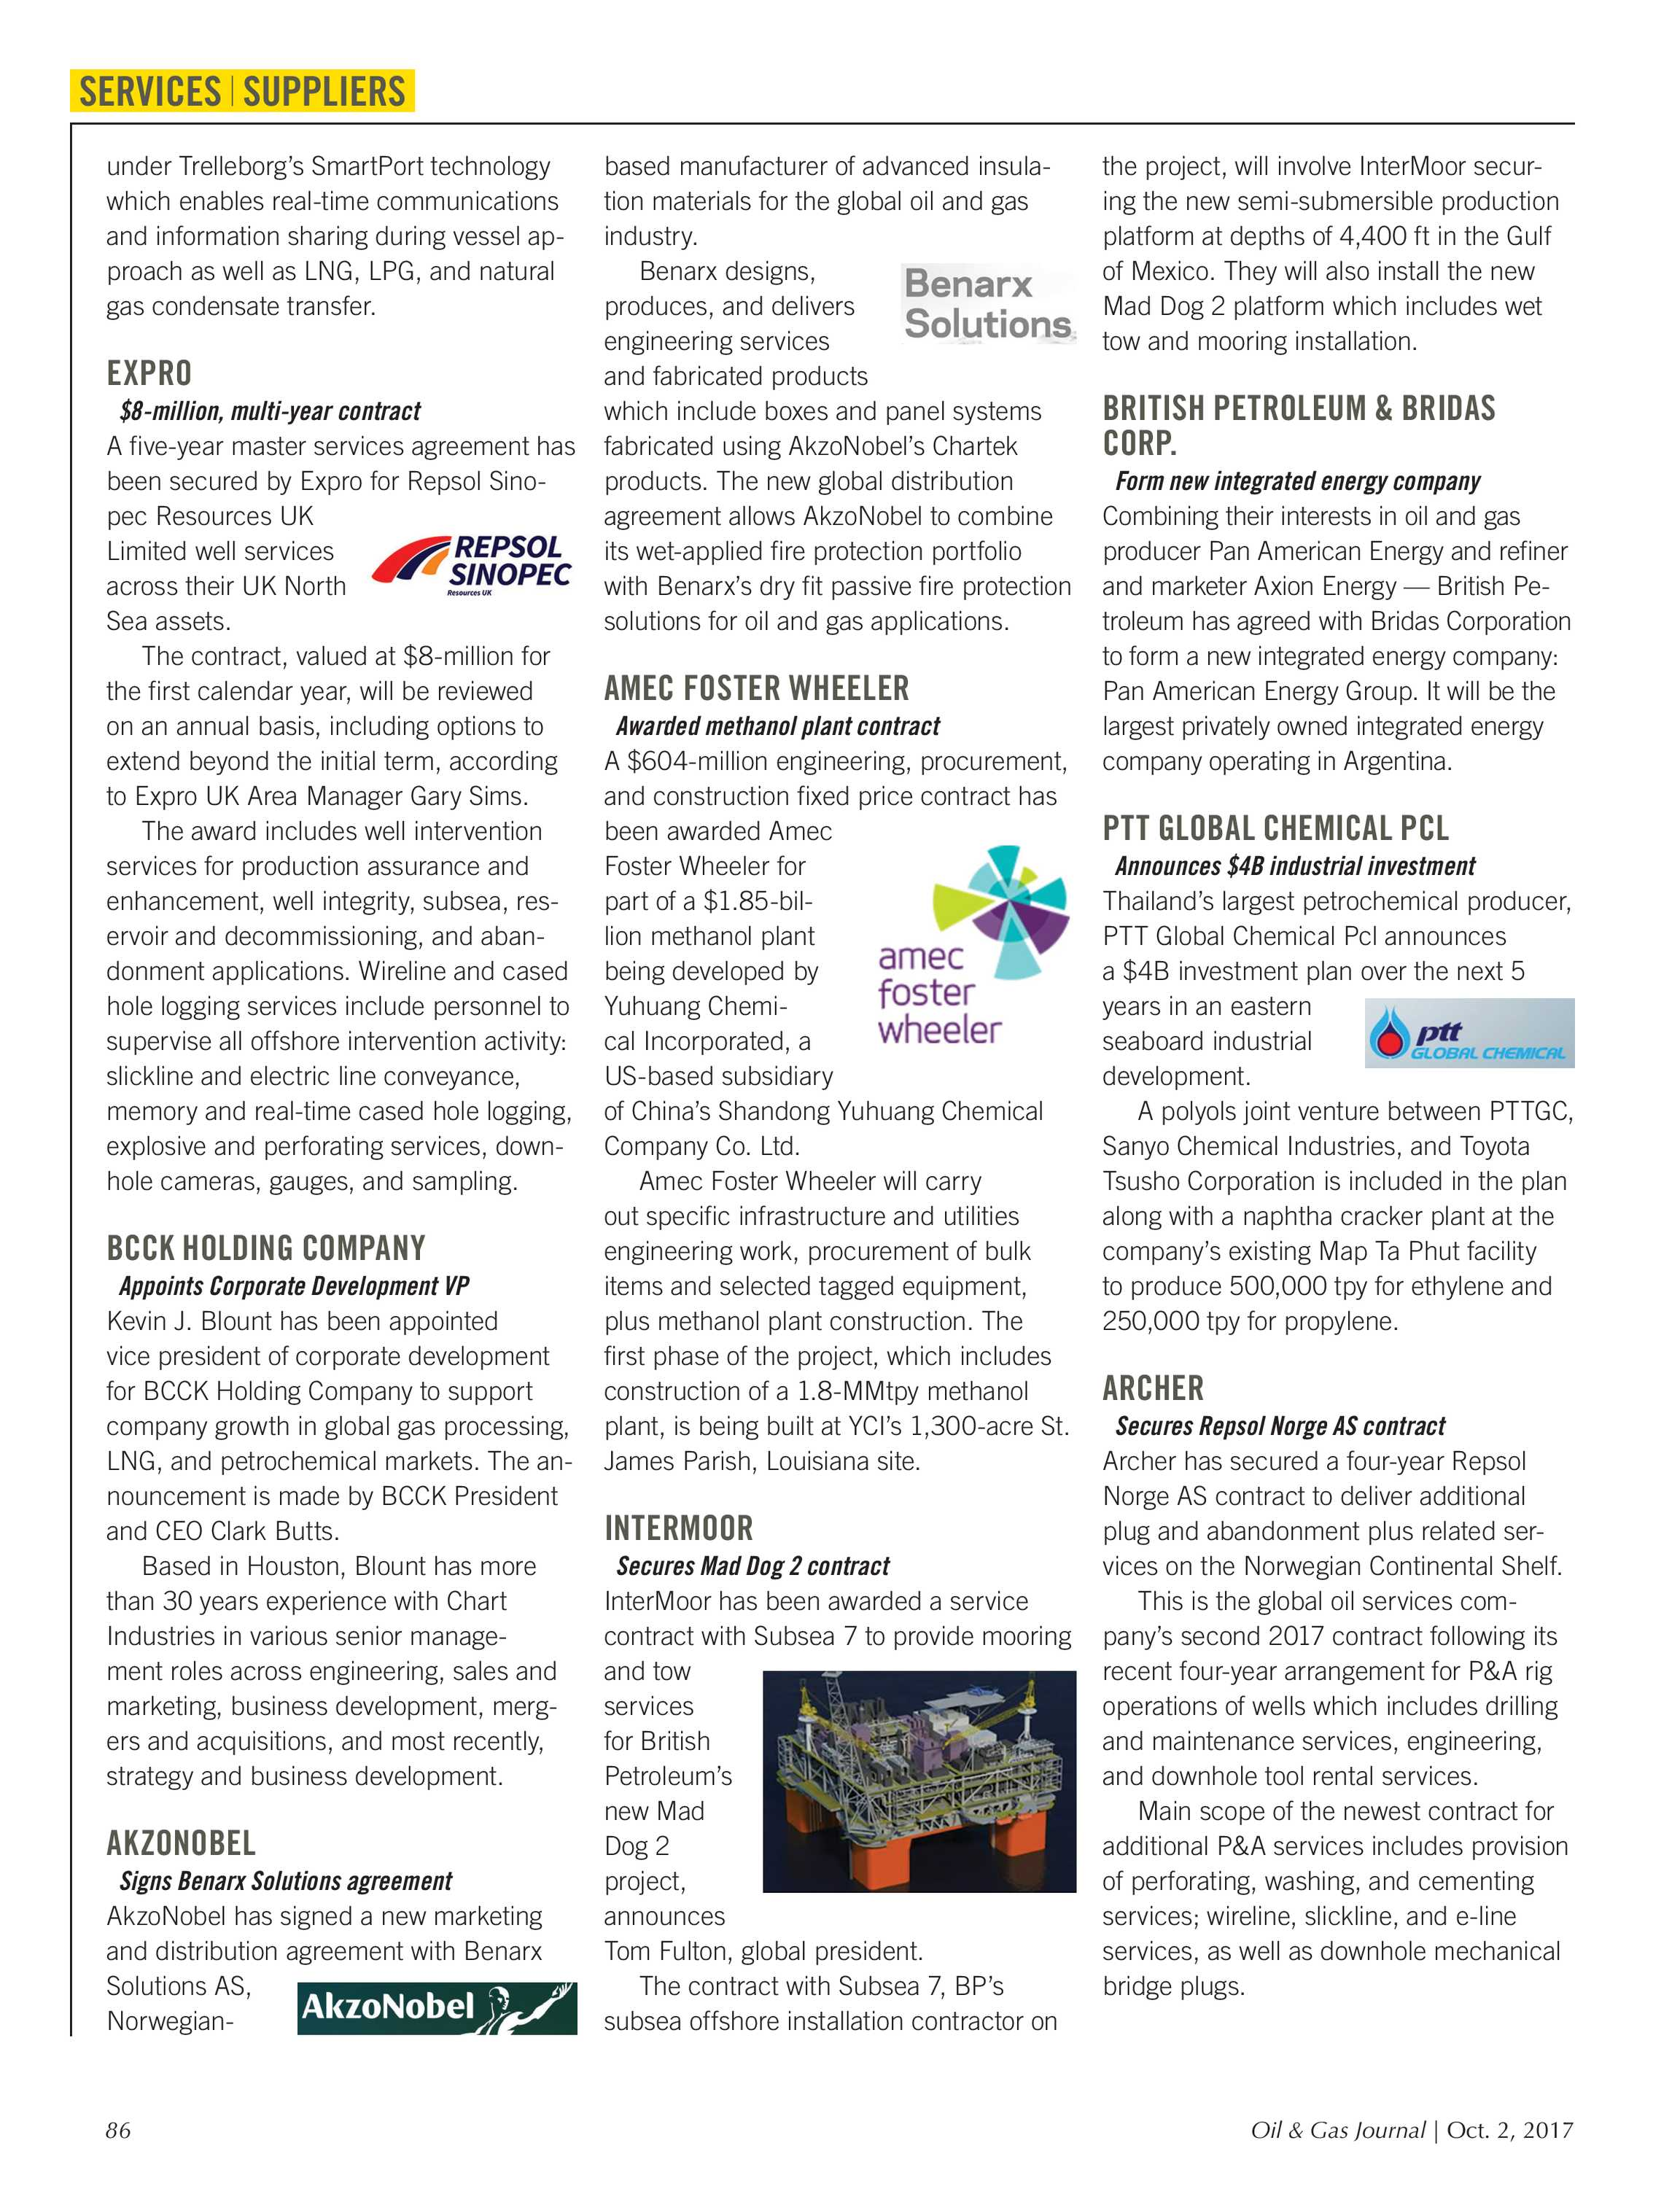 Oil & Gas Journal - October 2, 2017 - page 86